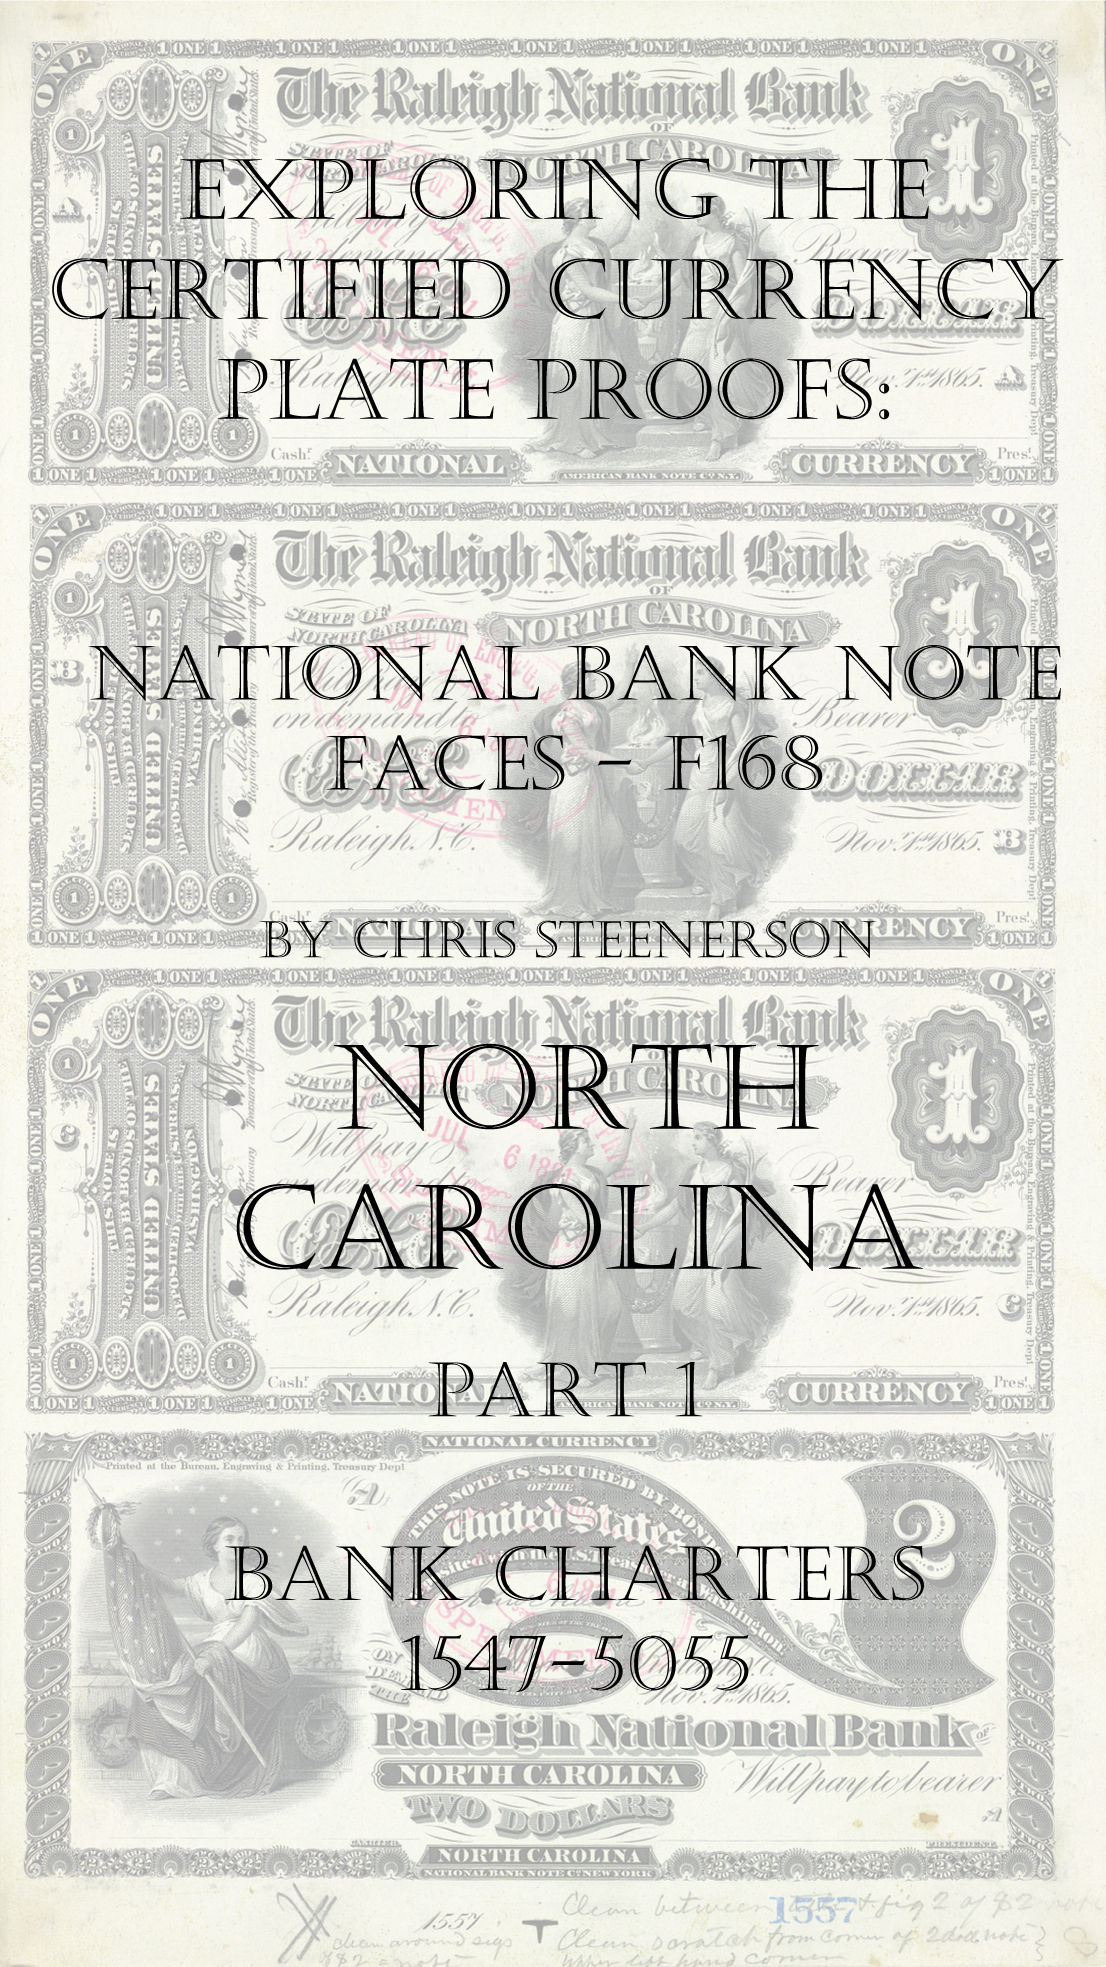 North Carolina National Bank Note Currency Proofs